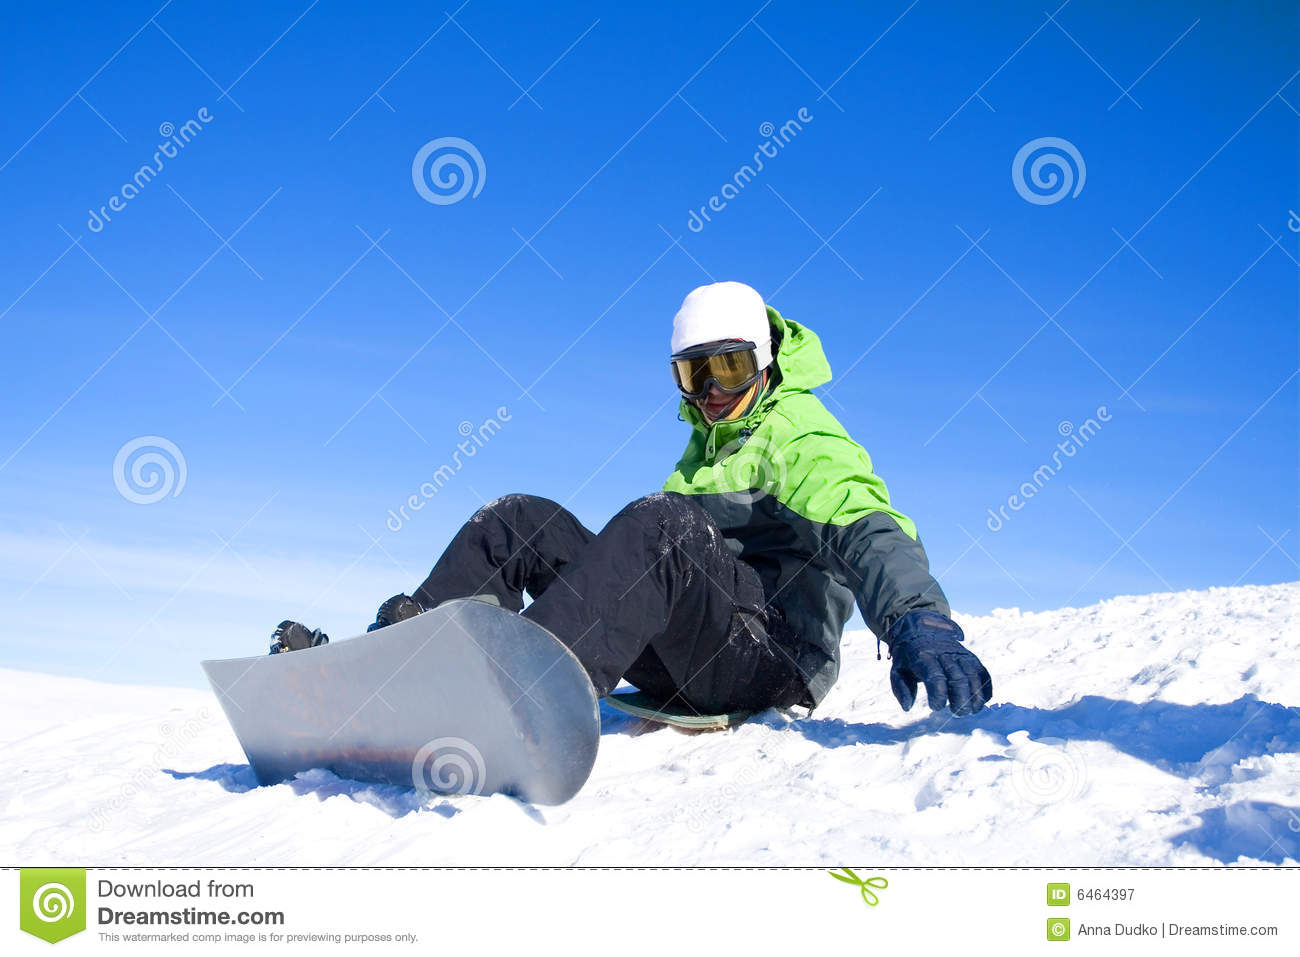 Snowboarder Royalty Free Stock Photography - Image: 6464397